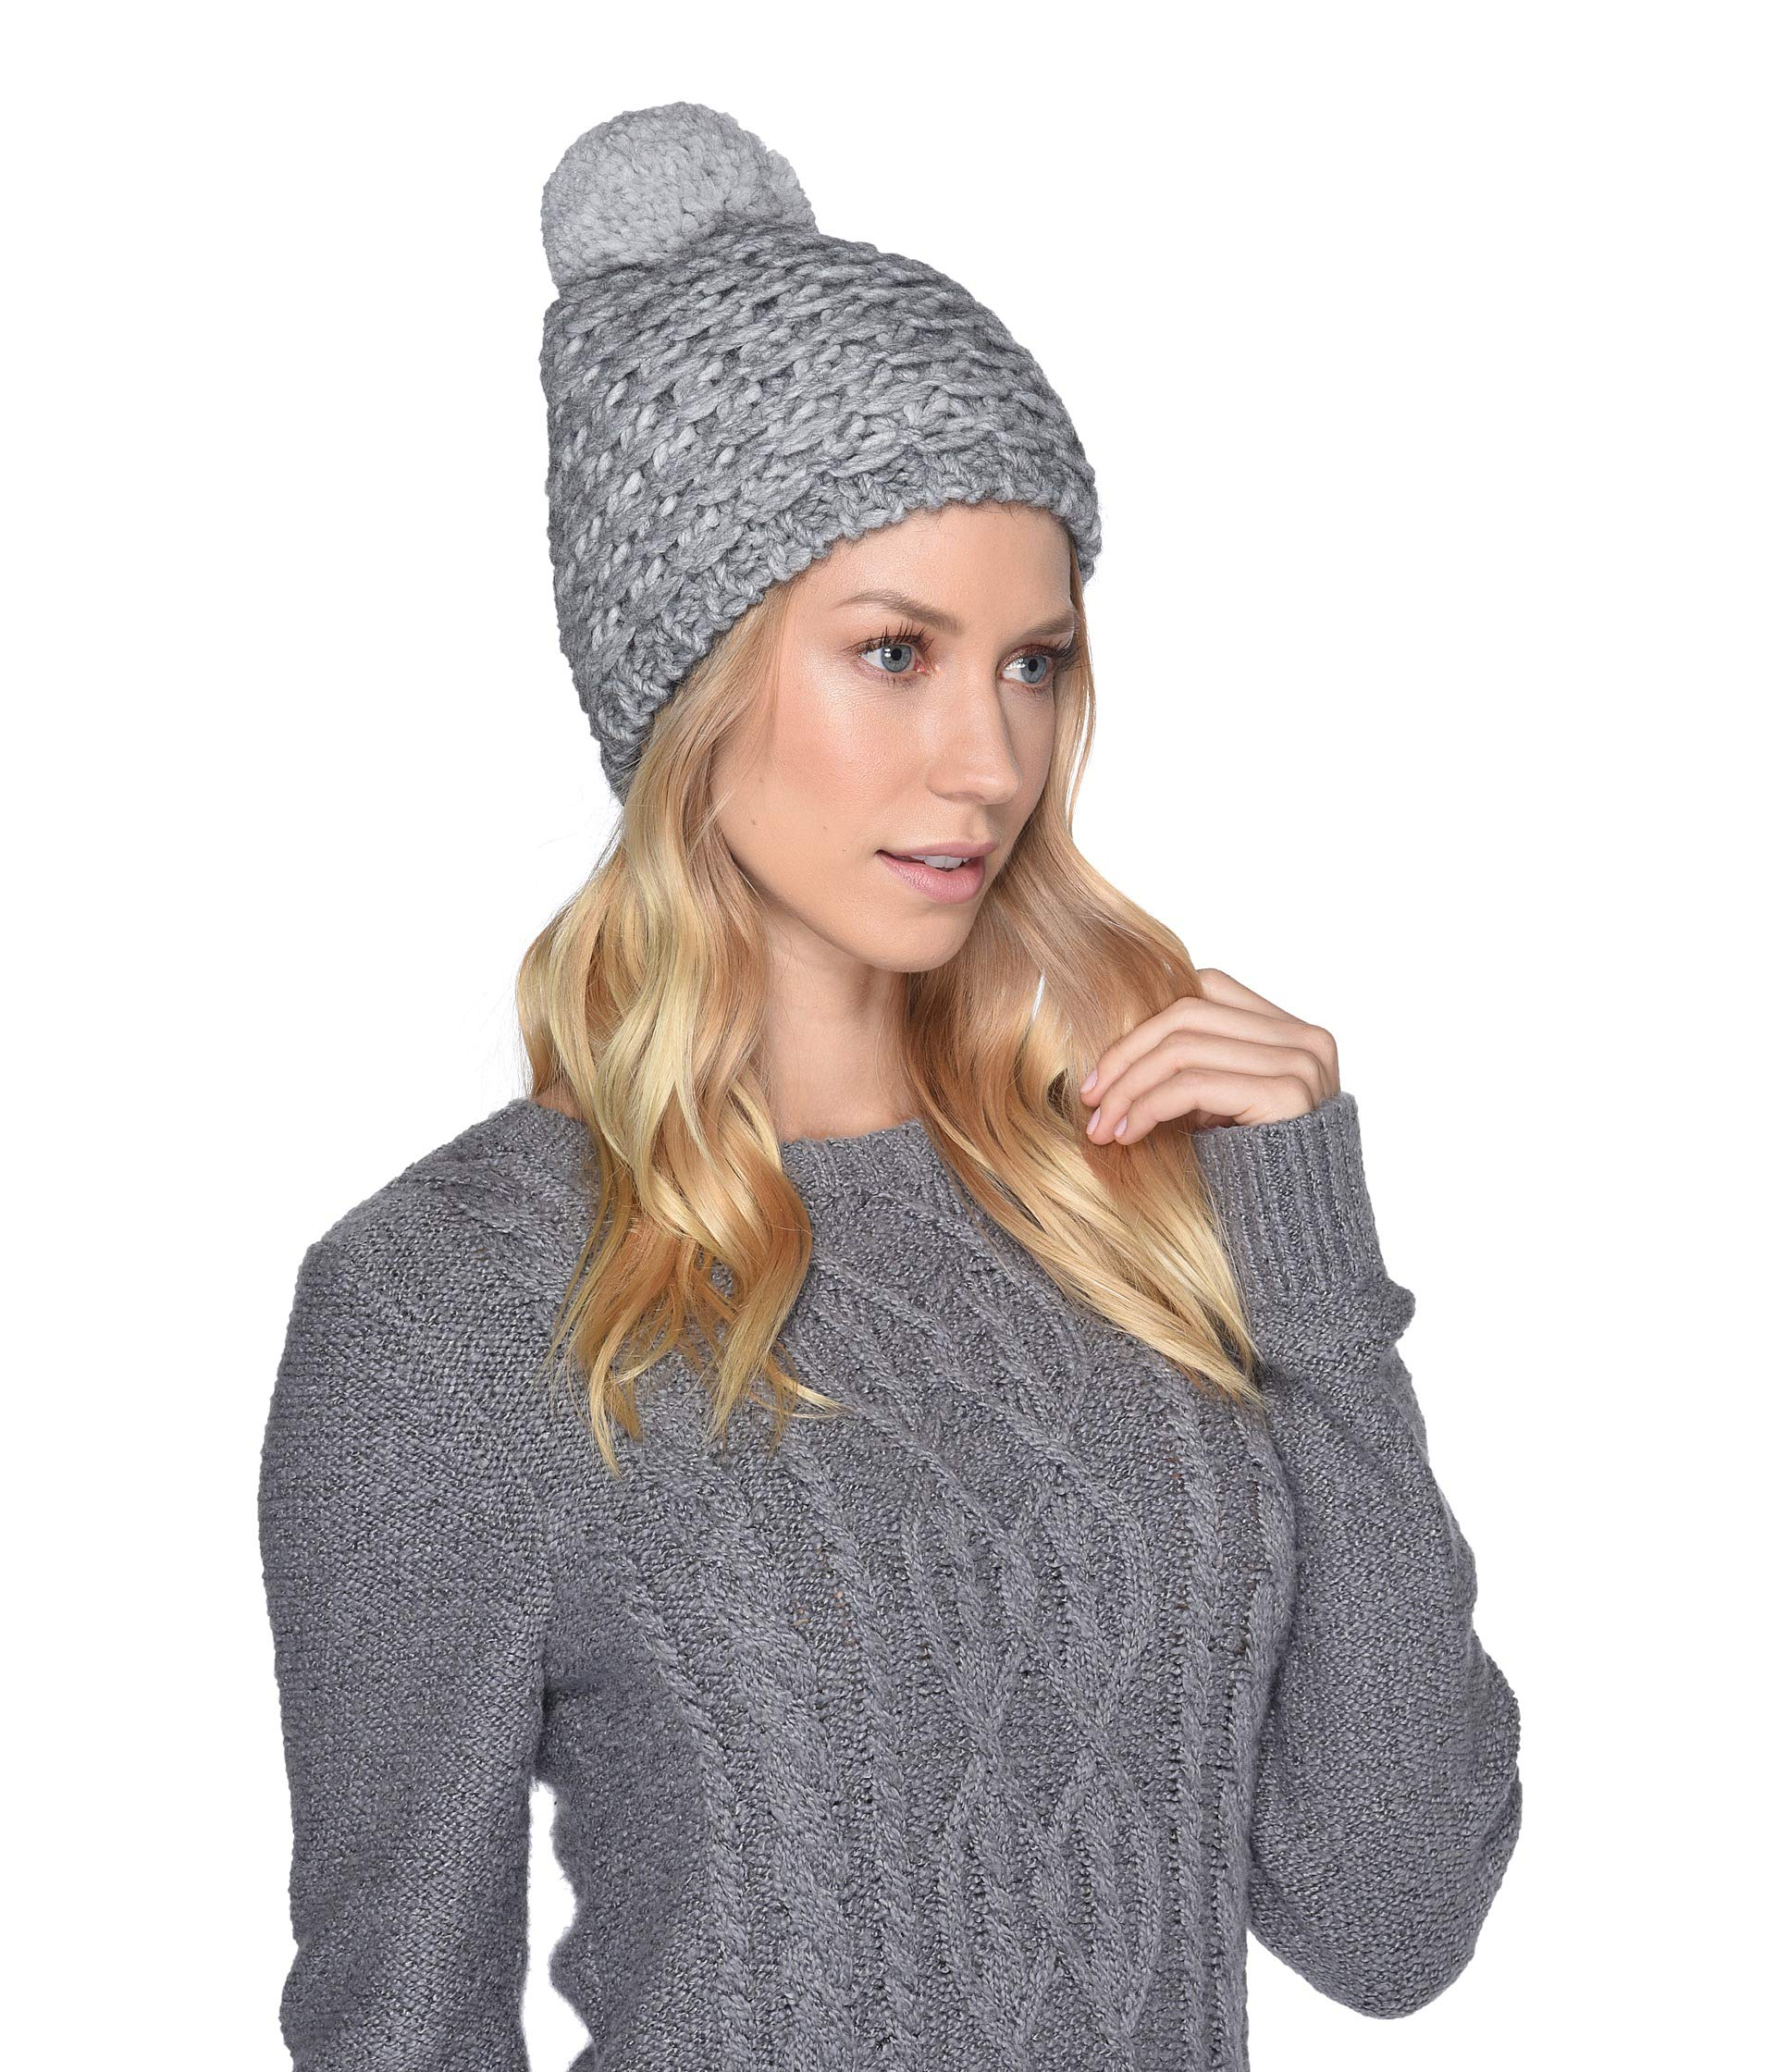 UGG Yarn Pom Knit Hat-Light Grey